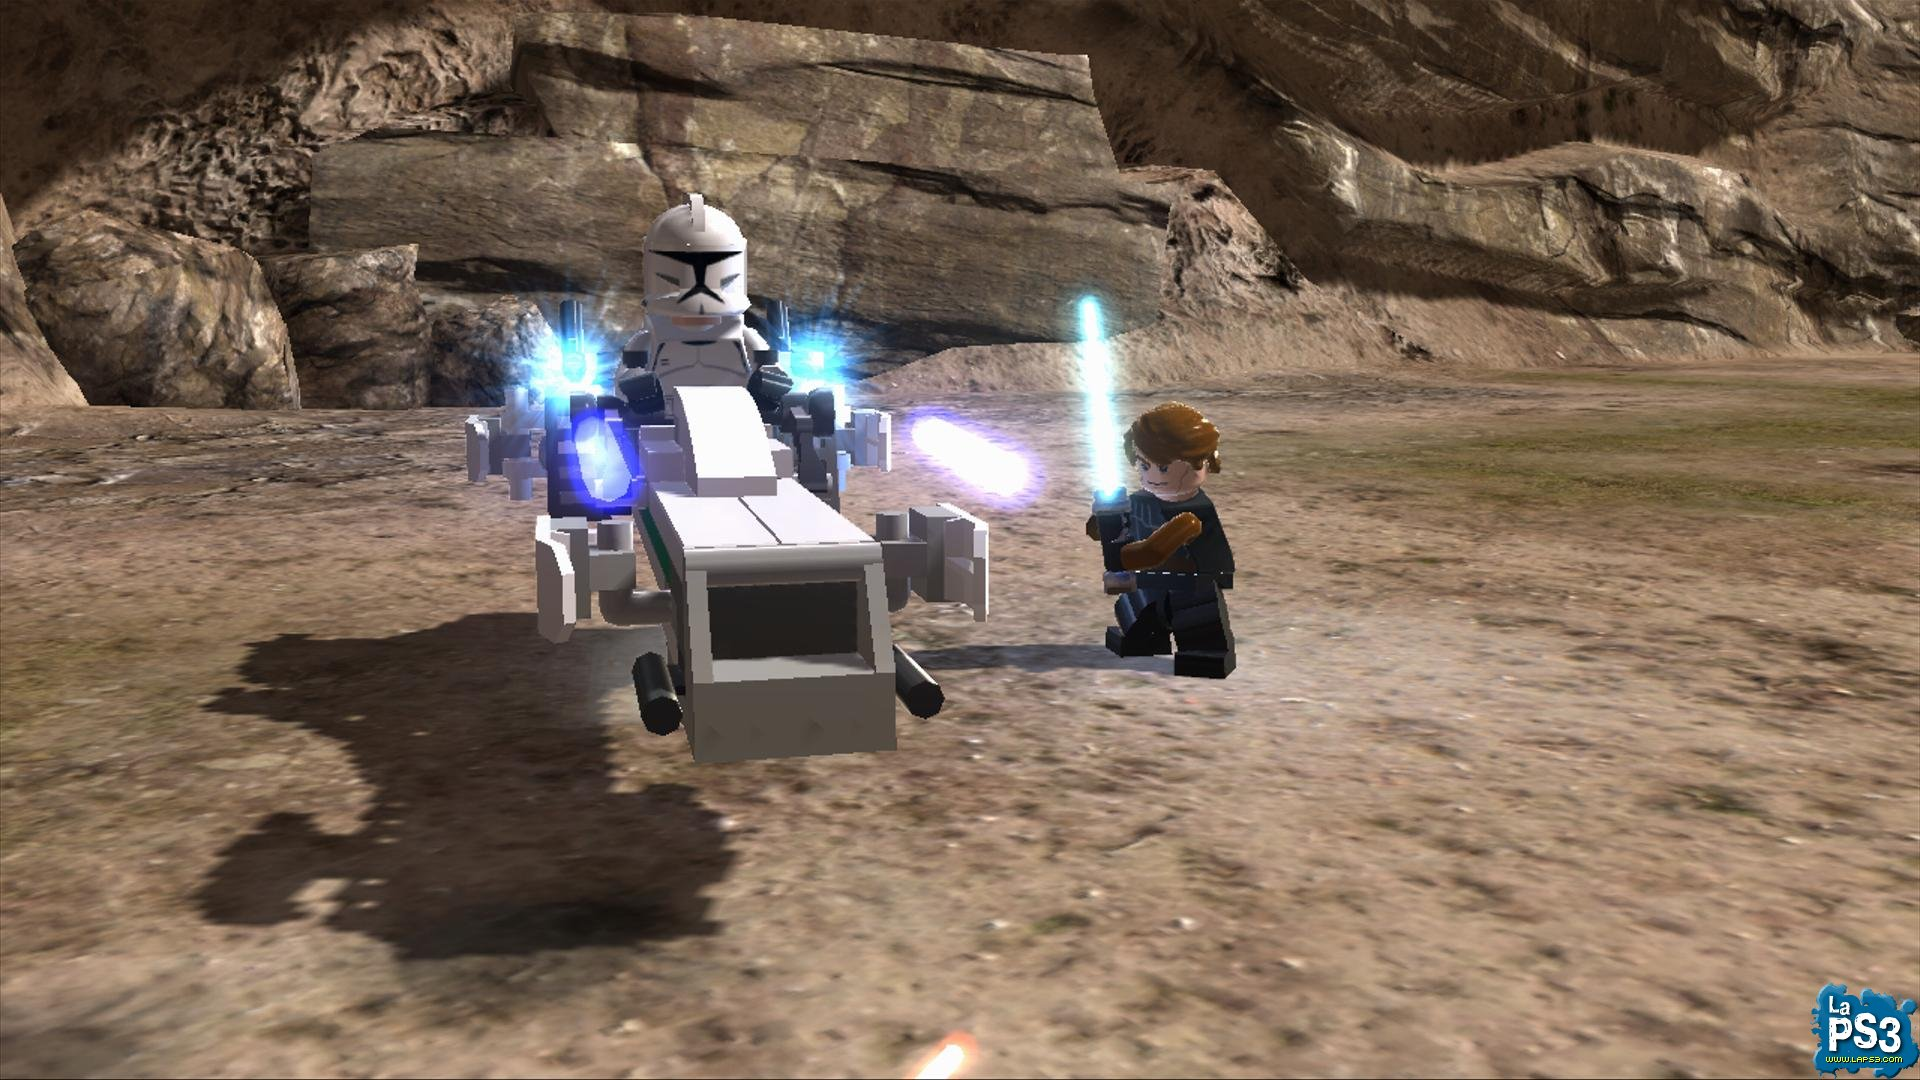 Lego Star Wars 3 The Clone Wars  setup free download